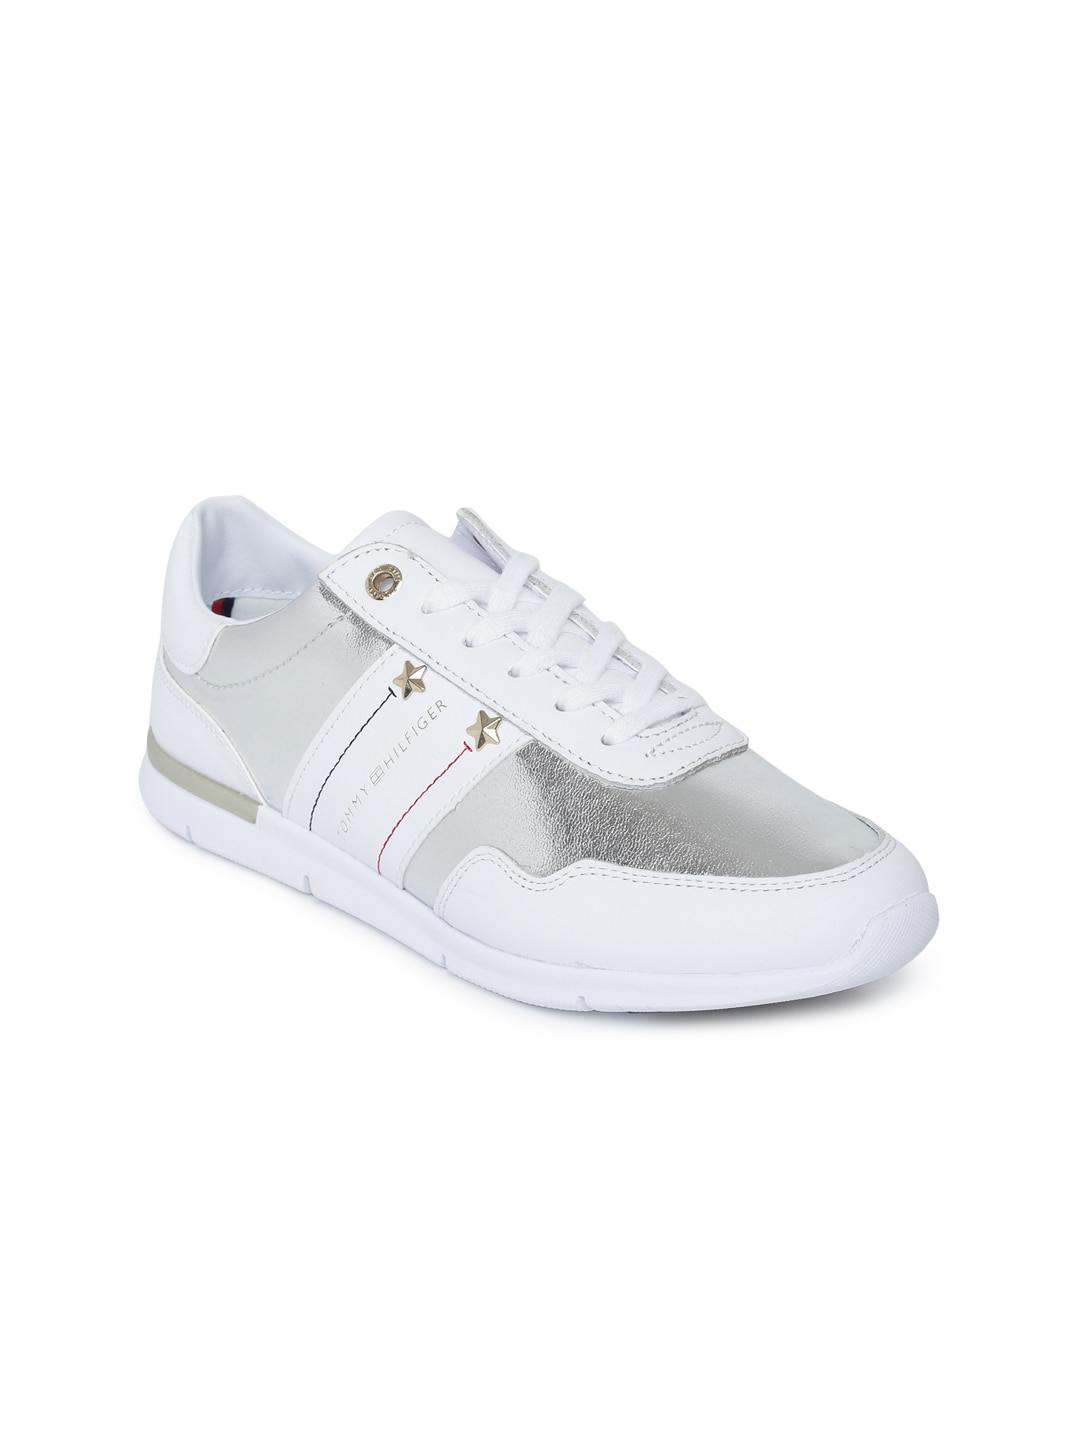 e360a362036 Tommy Hilfiger Shoes - Buy Tommy Hilfiger Shoes Online - Myntra